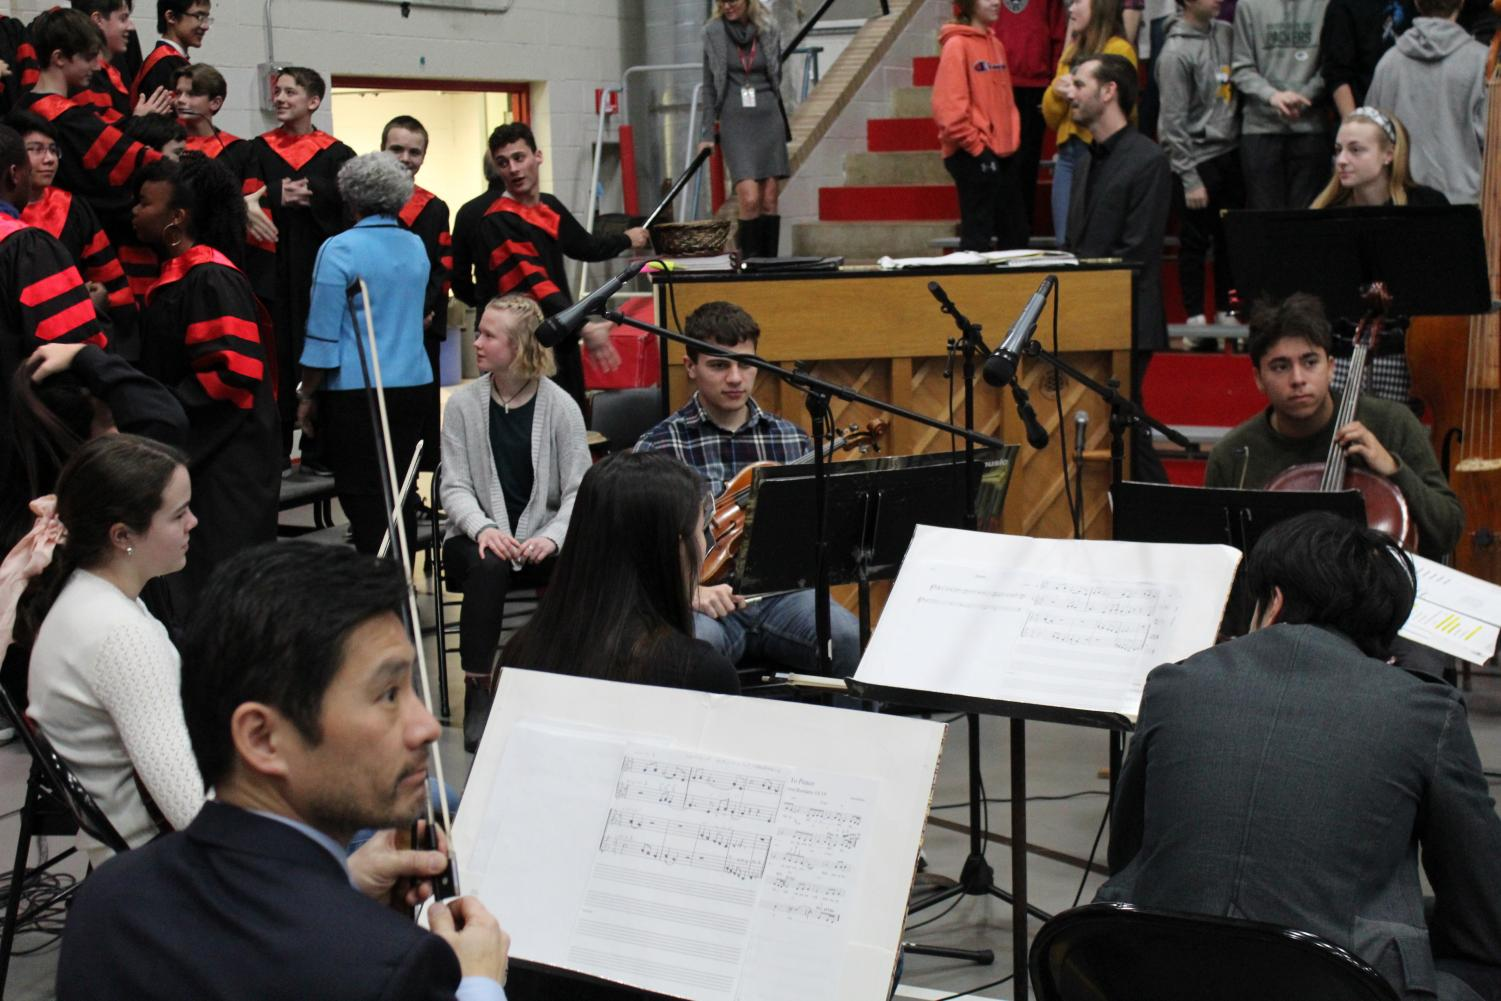 Despite dwindling in size, the orchestra still plays at mass.